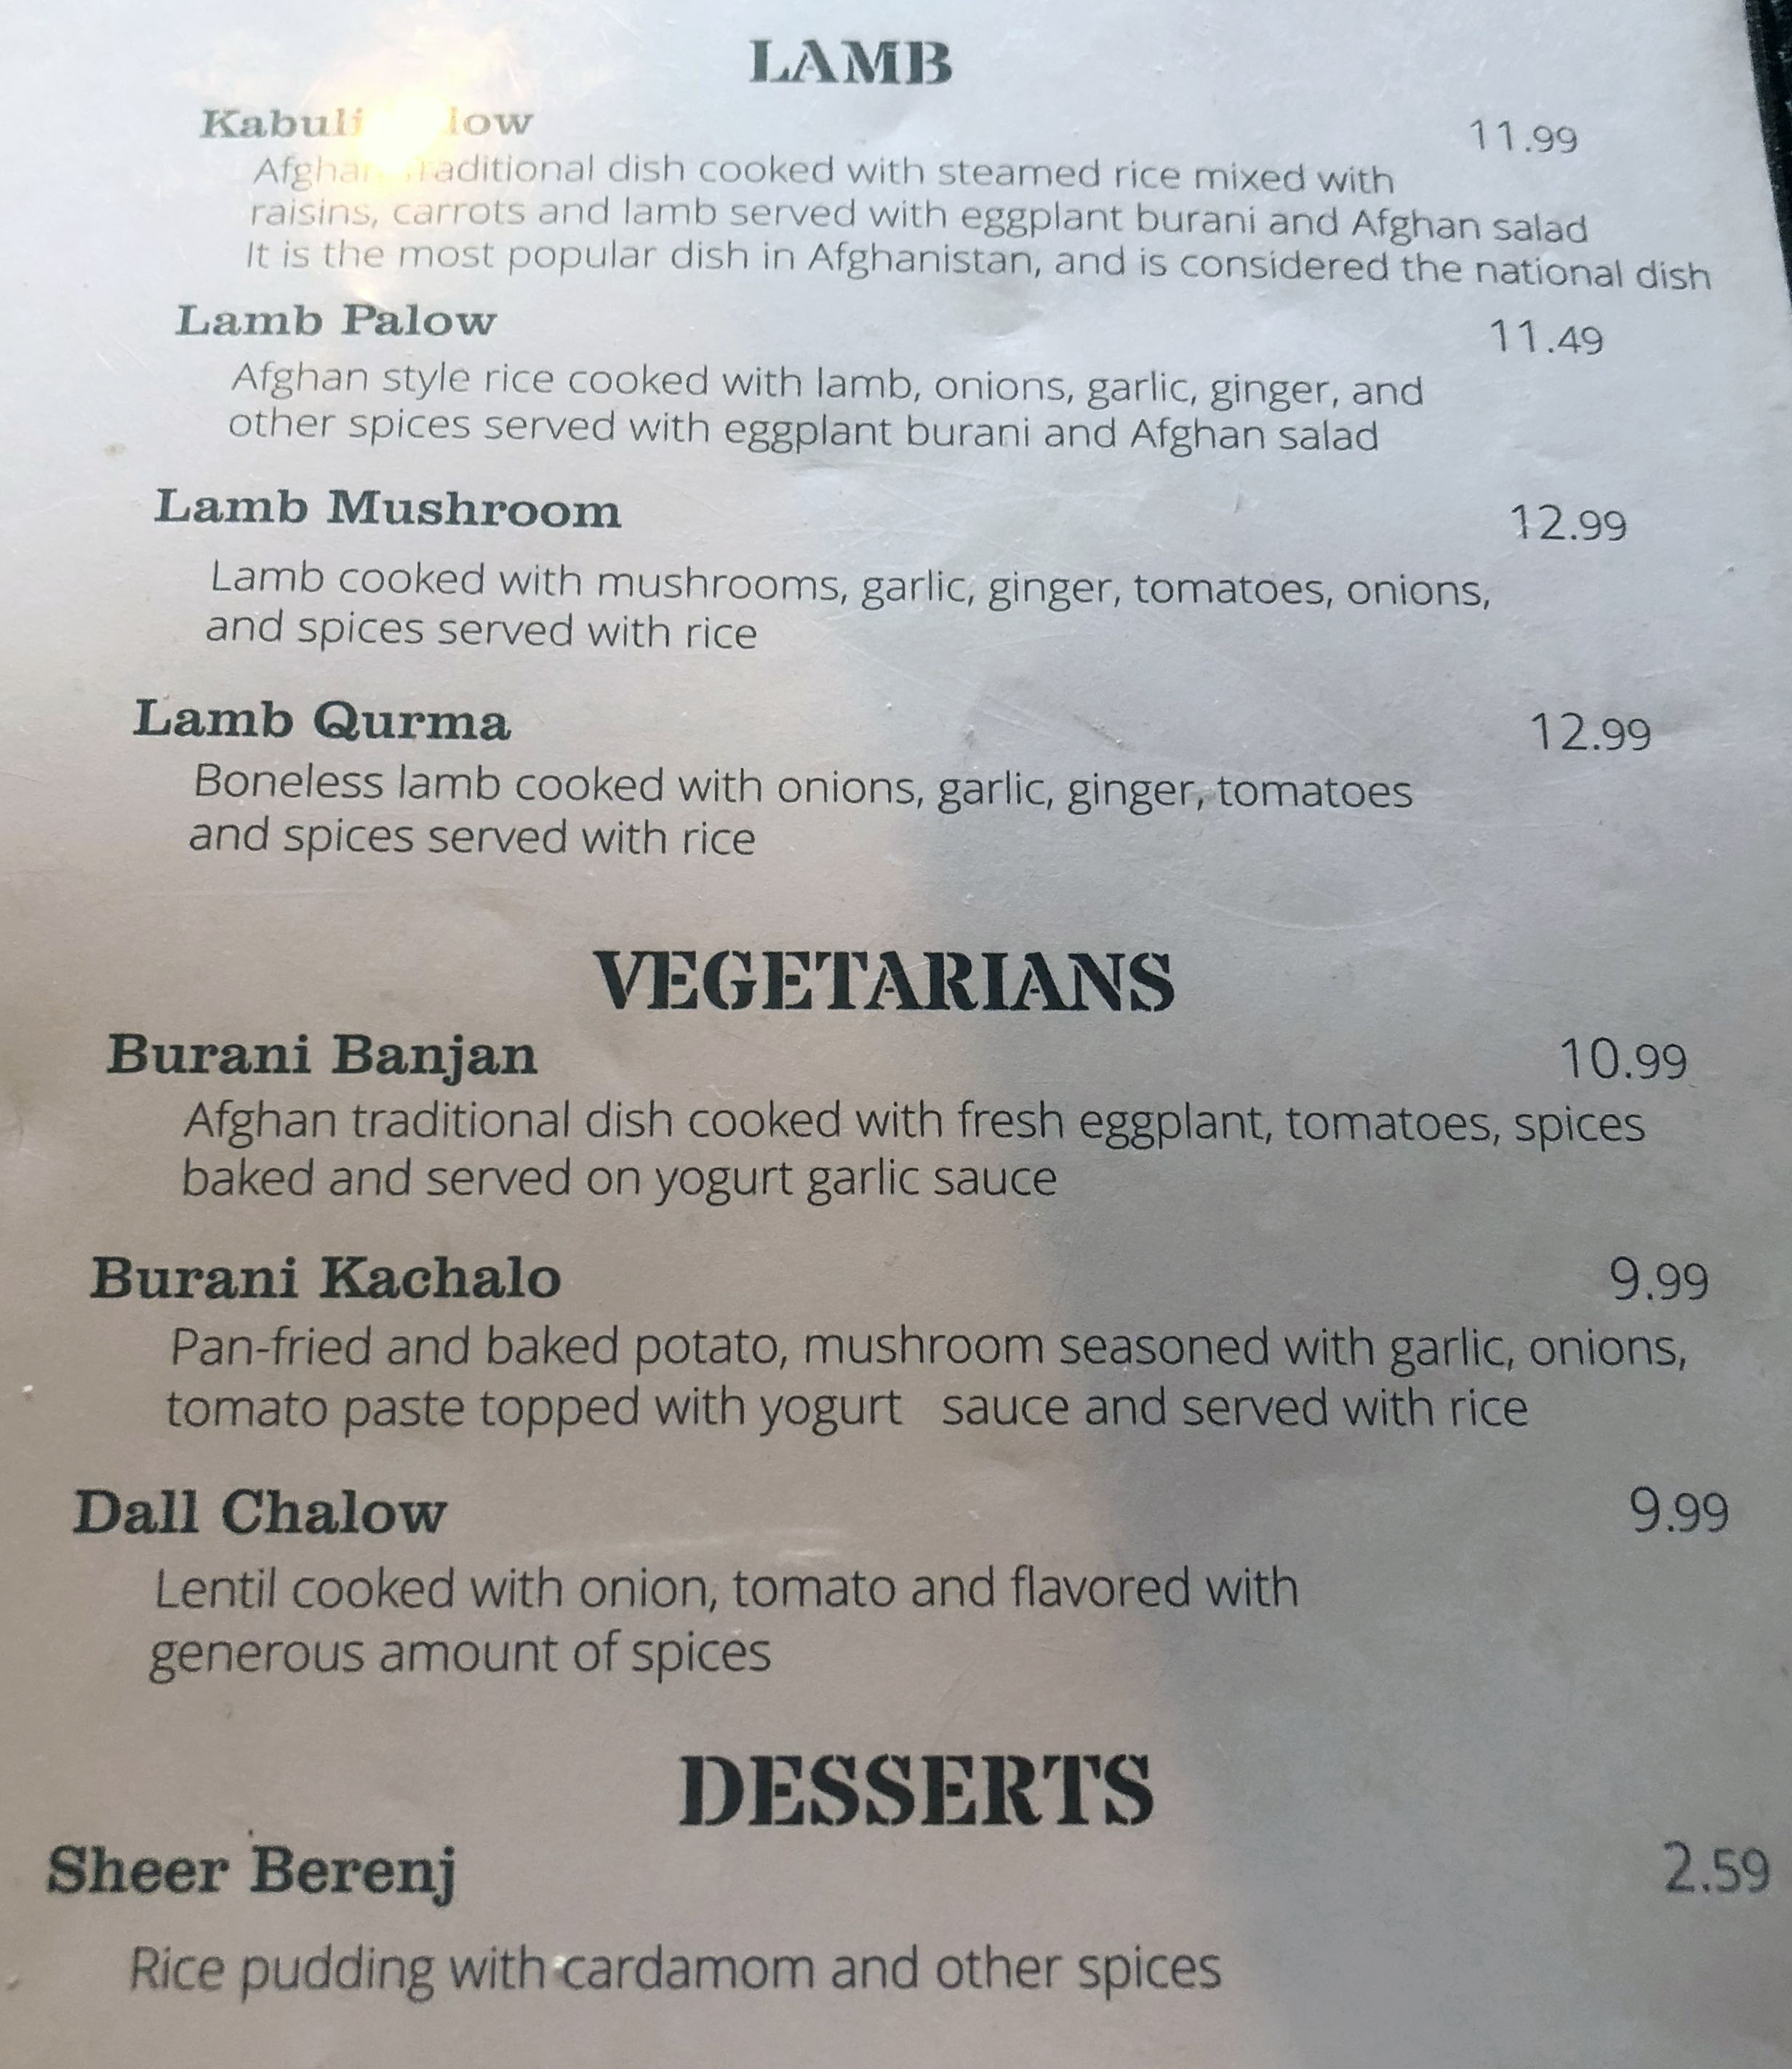 Afghan Kitchen menu - lamb, vegetarians, desserts